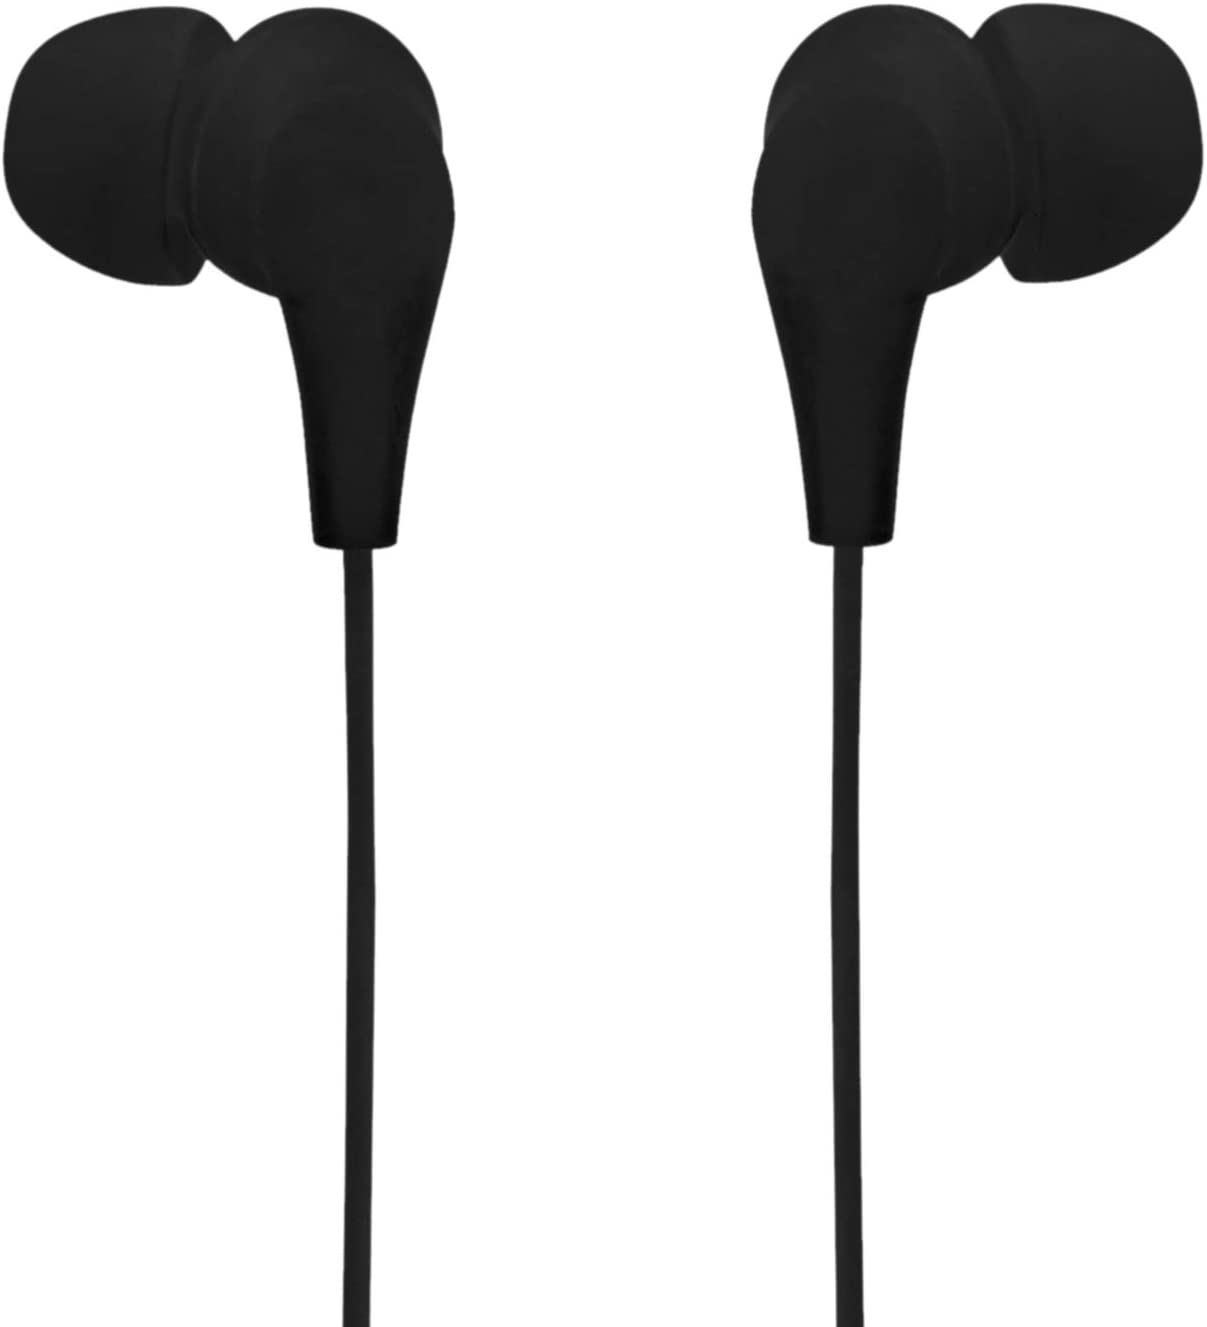 Axilleo S-02 in-Ear Wired Earphone/Earbuds with Microphone | Noise Cancelling Headphones with 3.5mm Jack for iPhone, Laptop, Computer, Apple, iPad, PC (Black)